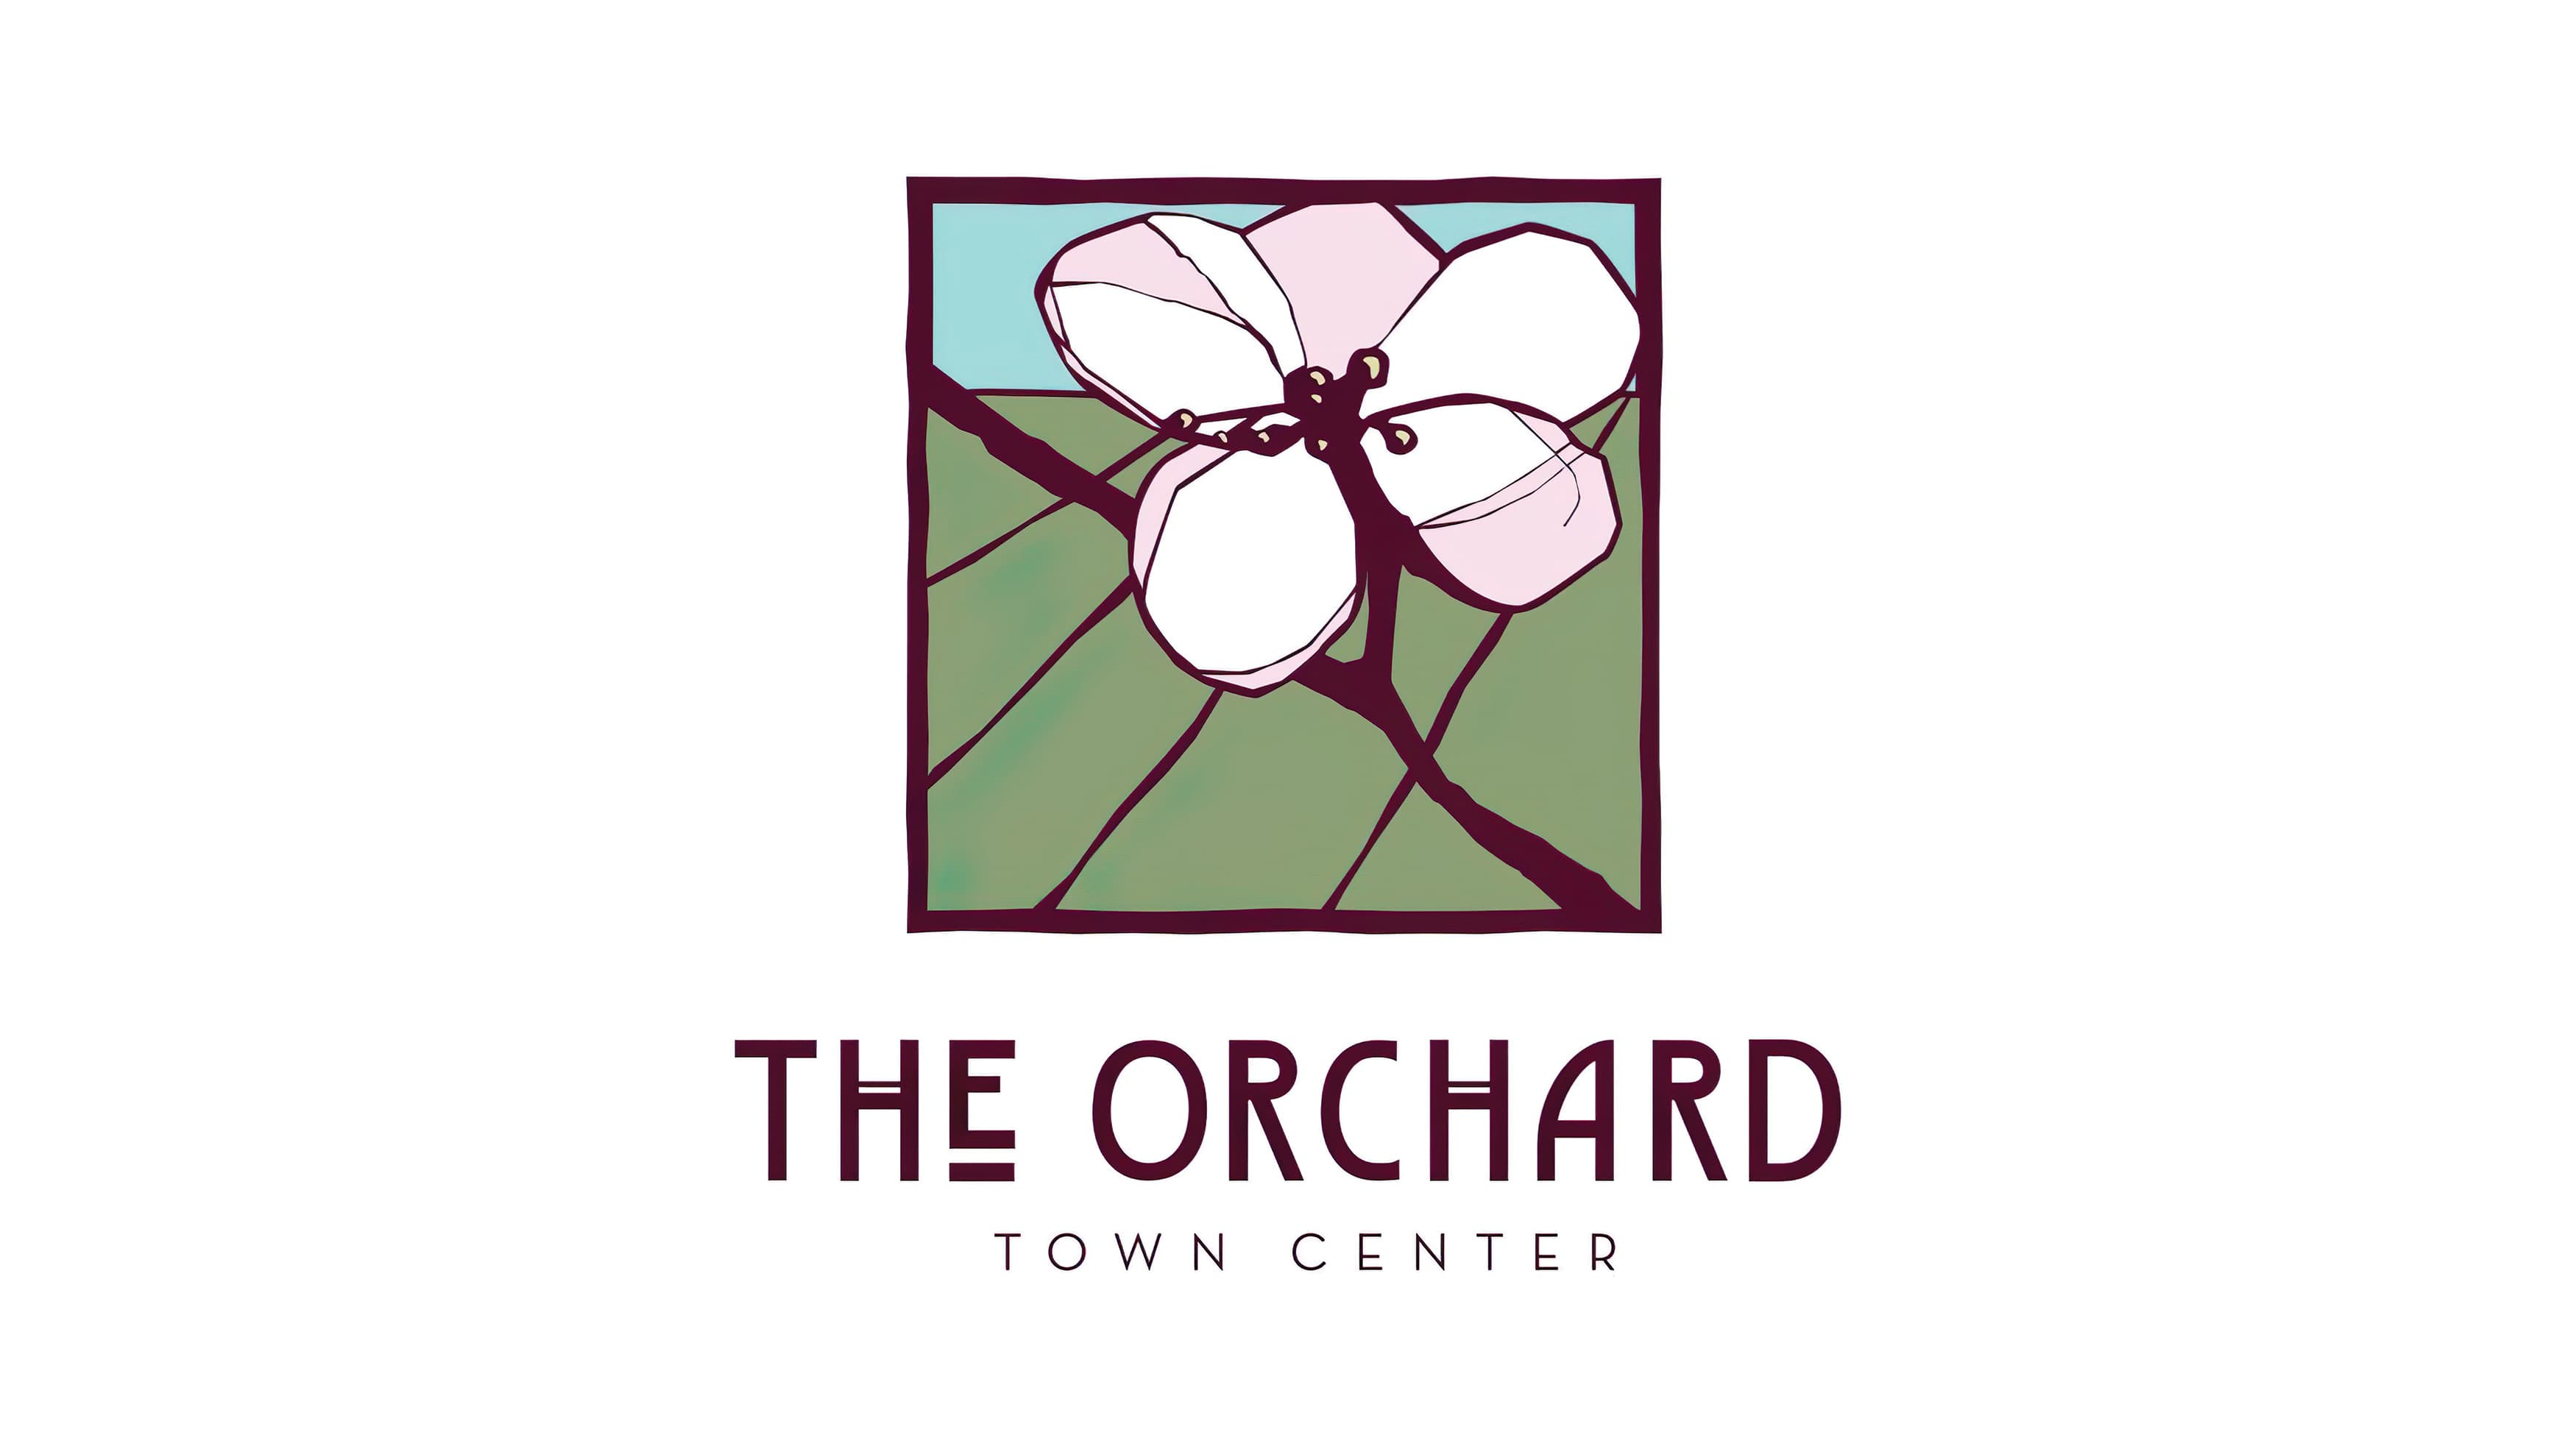 The Orchard stained-glass style flower logo-mark and logo